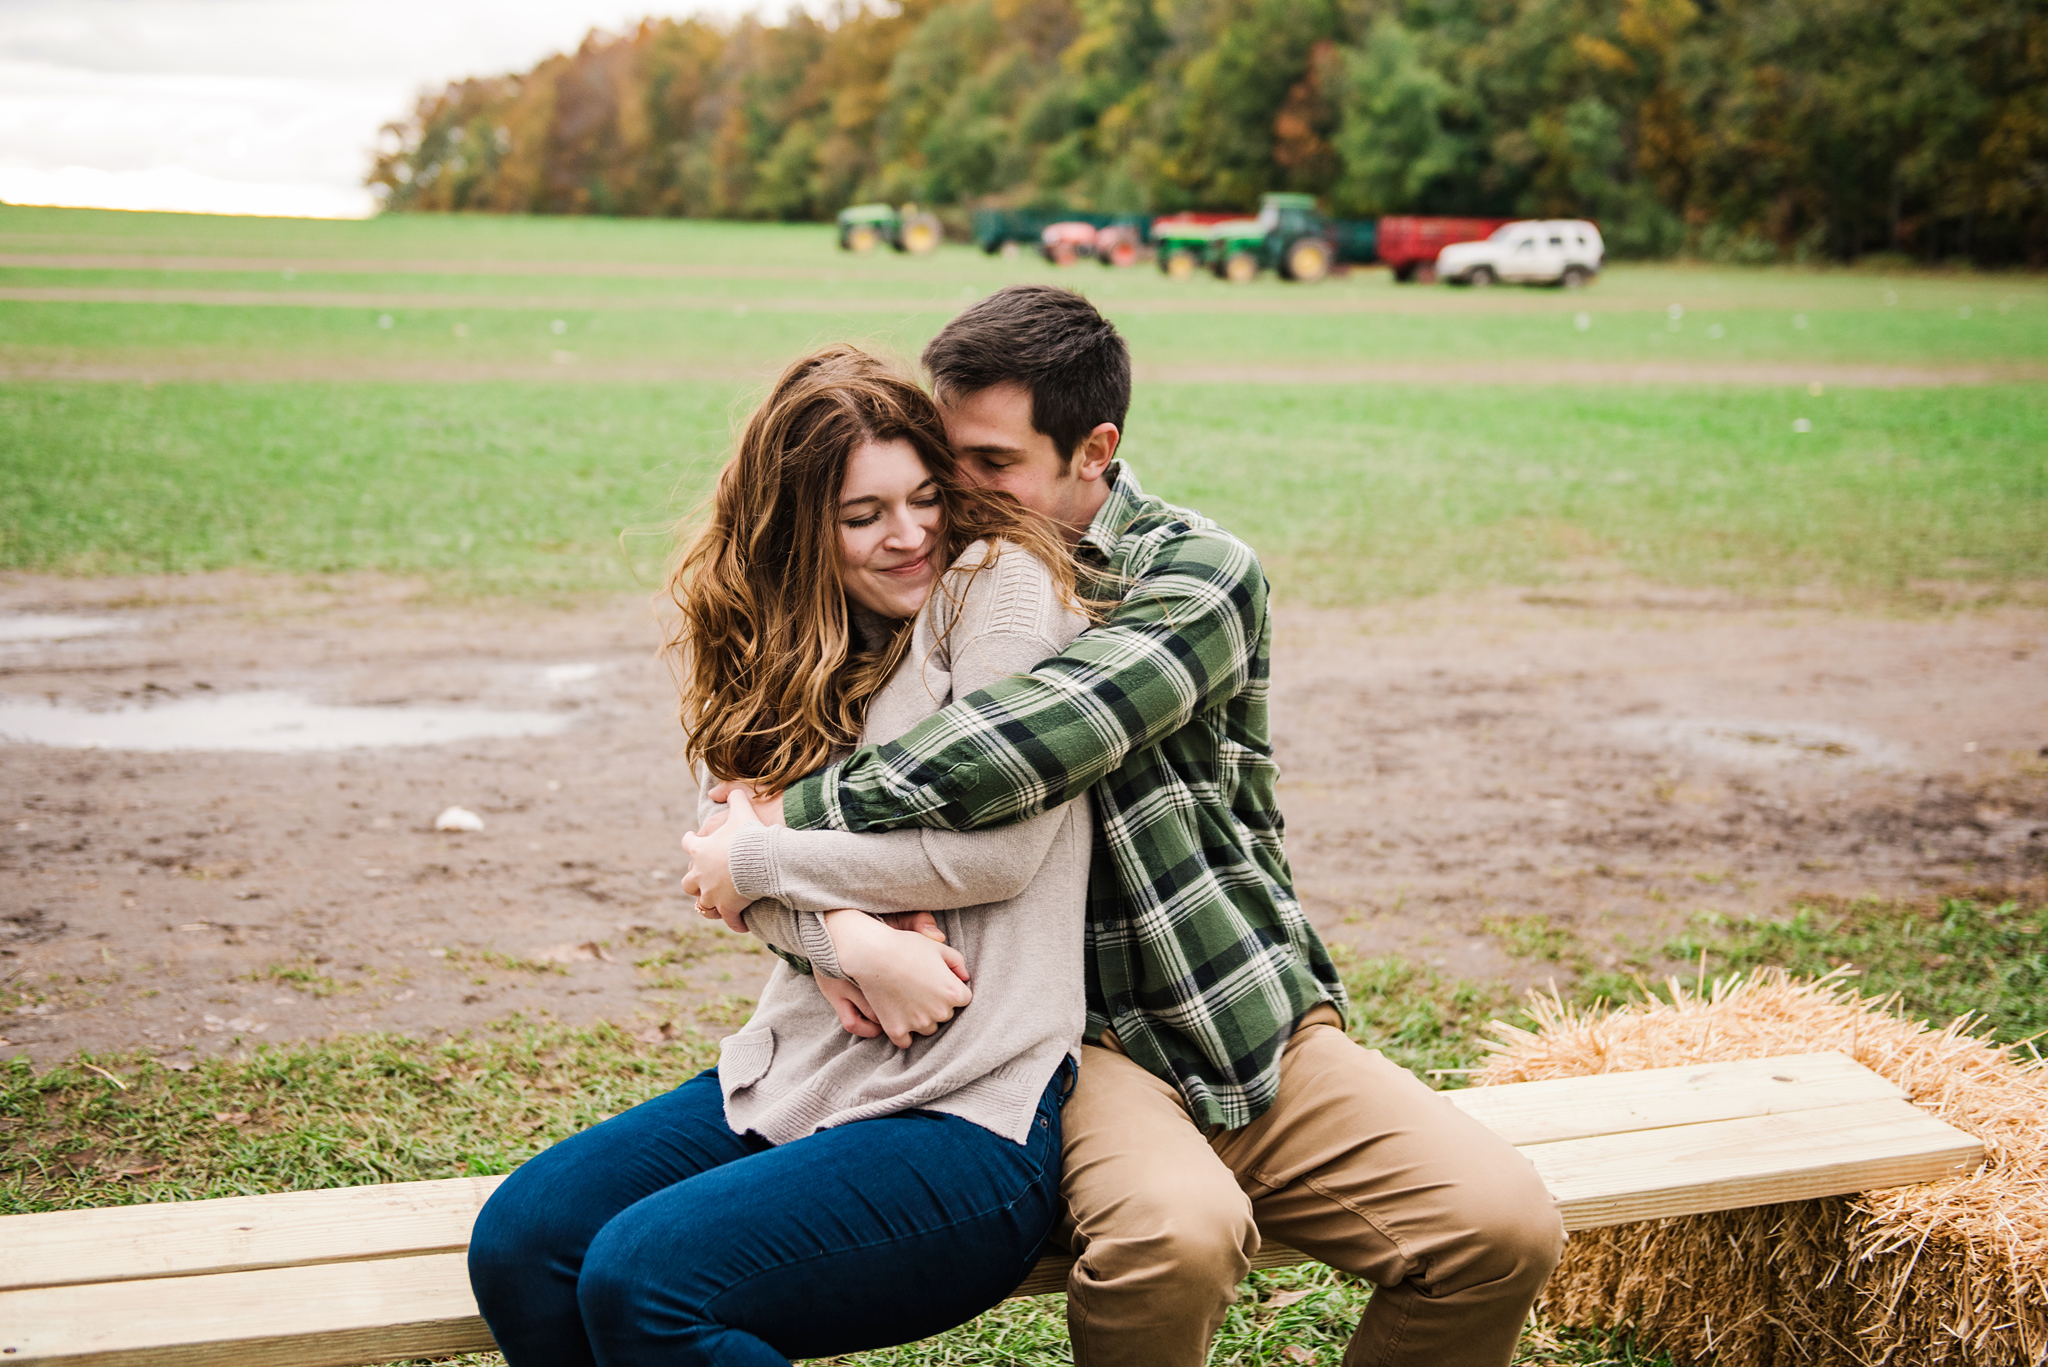 Becker_Farms_Buffalo_Engagement_Session_JILL_STUDIO_Rochester_NY_Photographer_DSC_4884.jpg